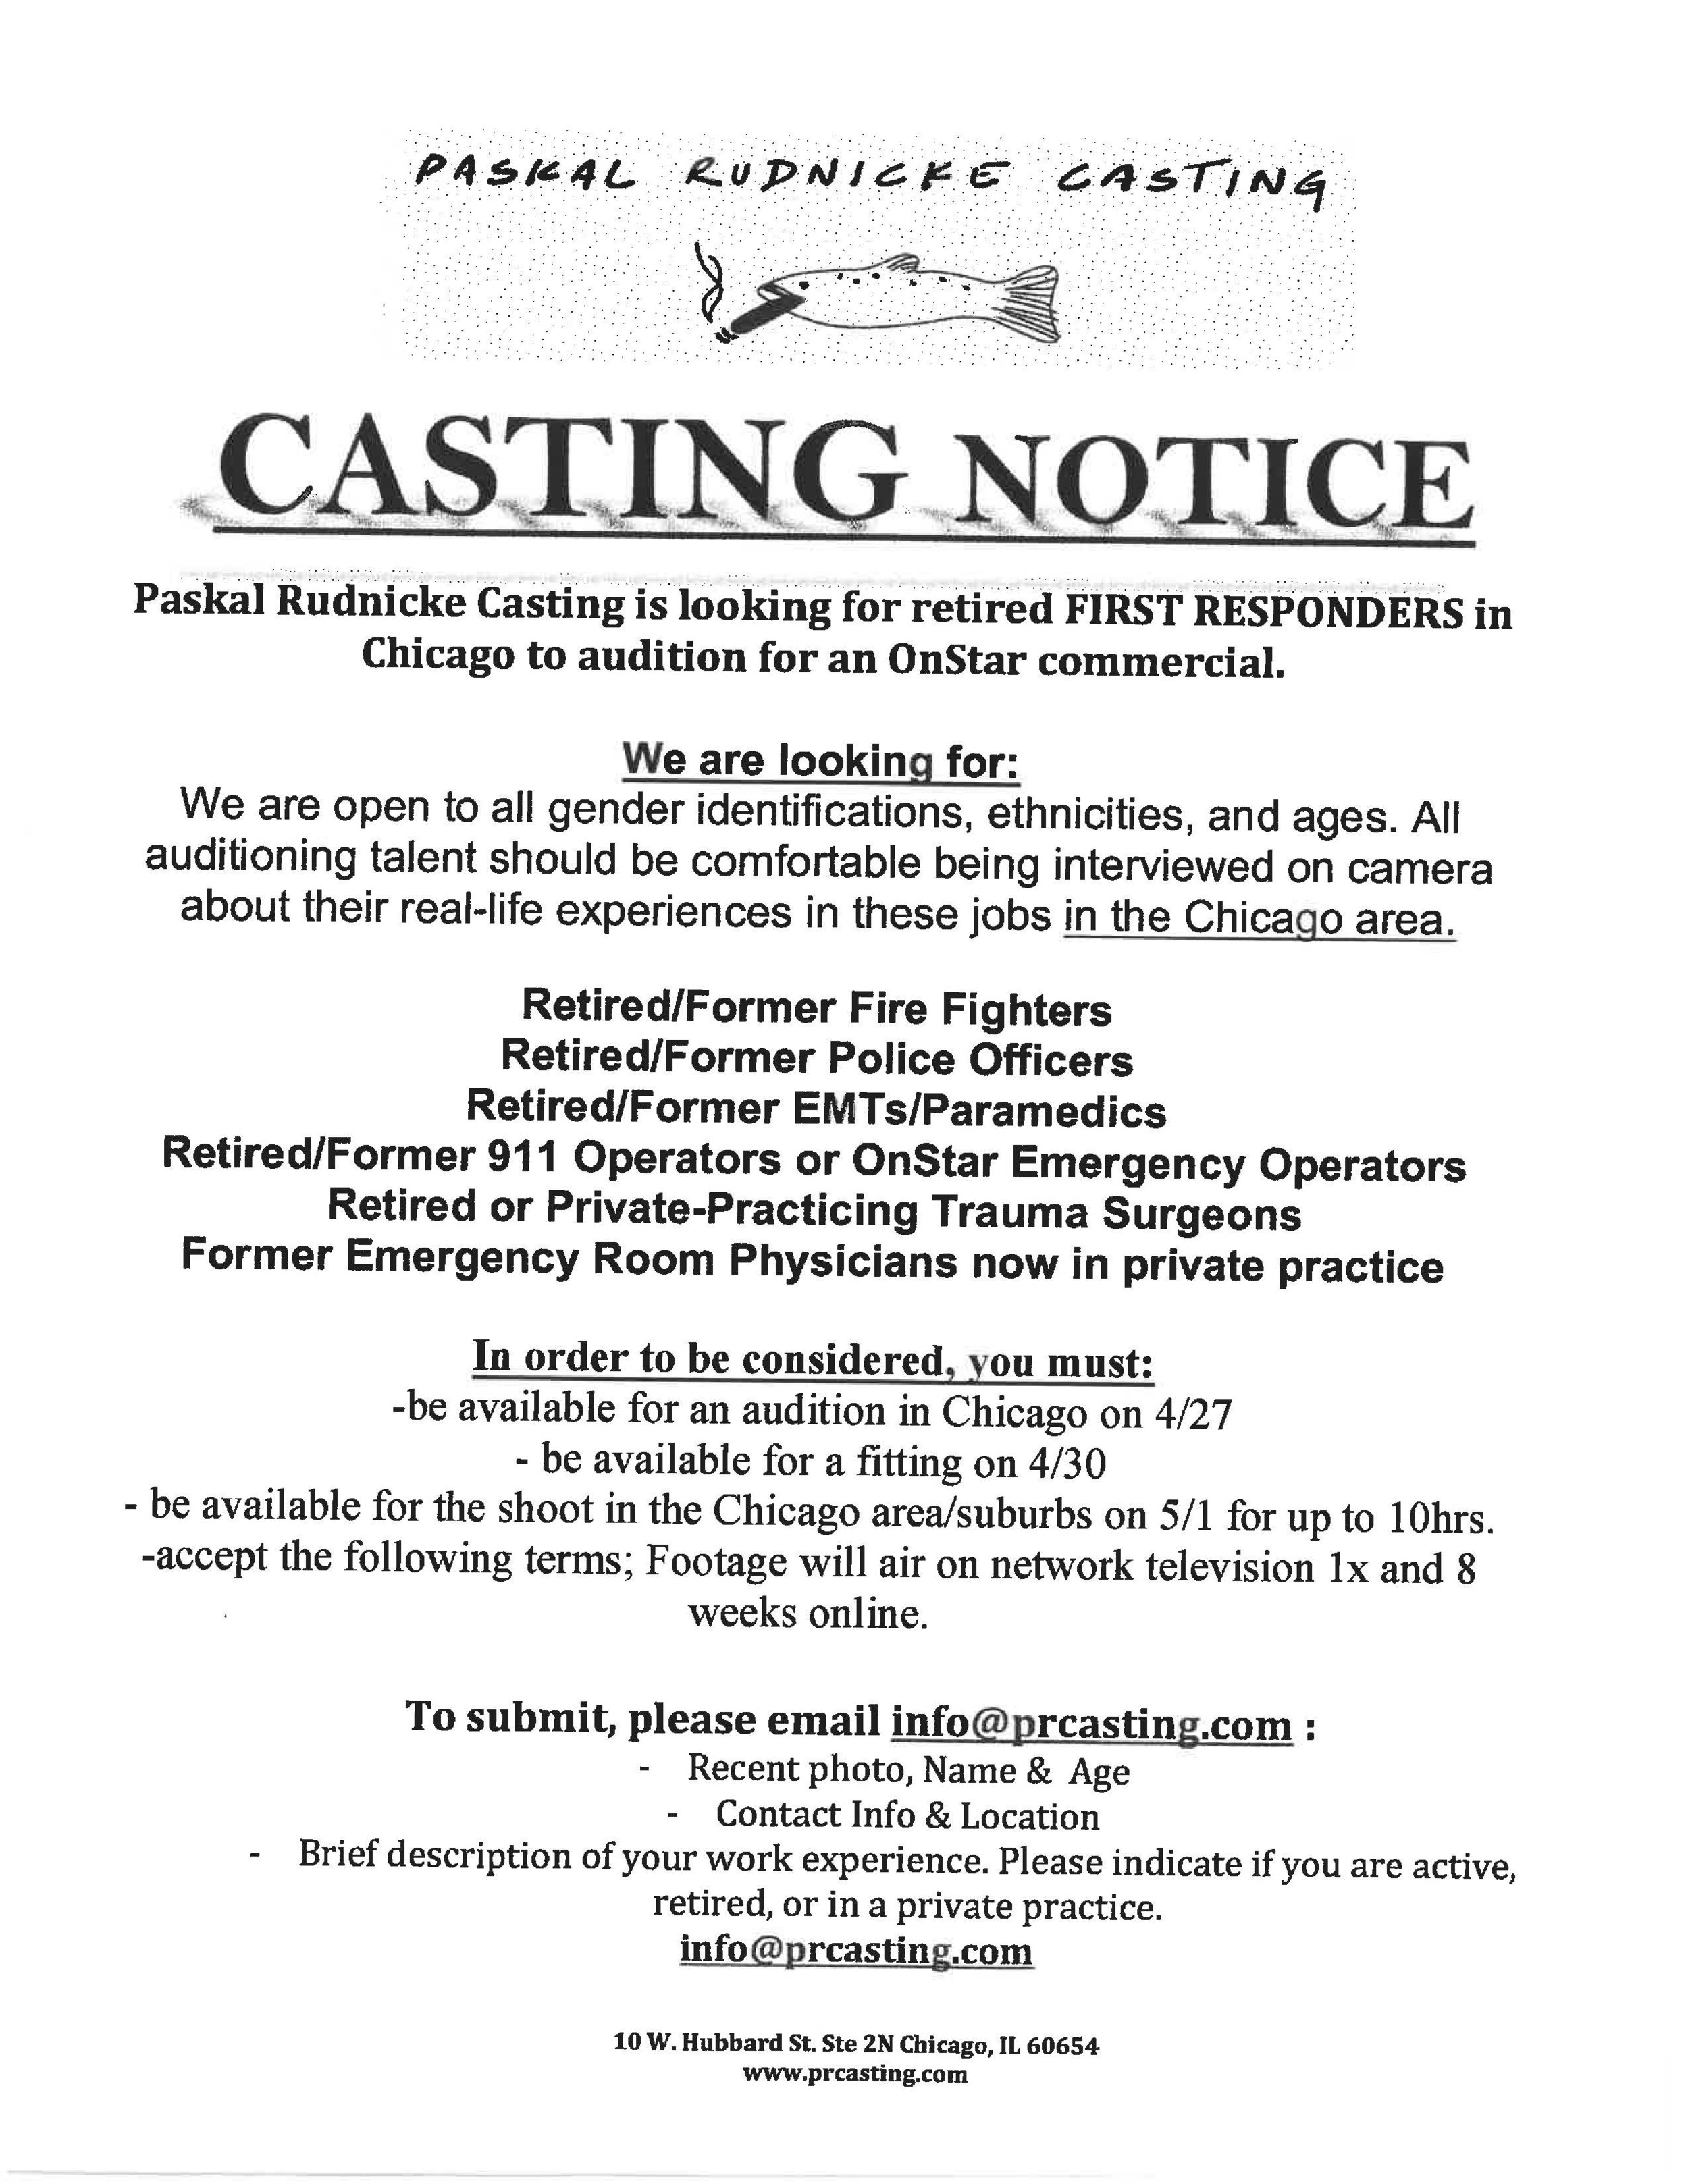 Casting Notice for Retired First Responders.jpg